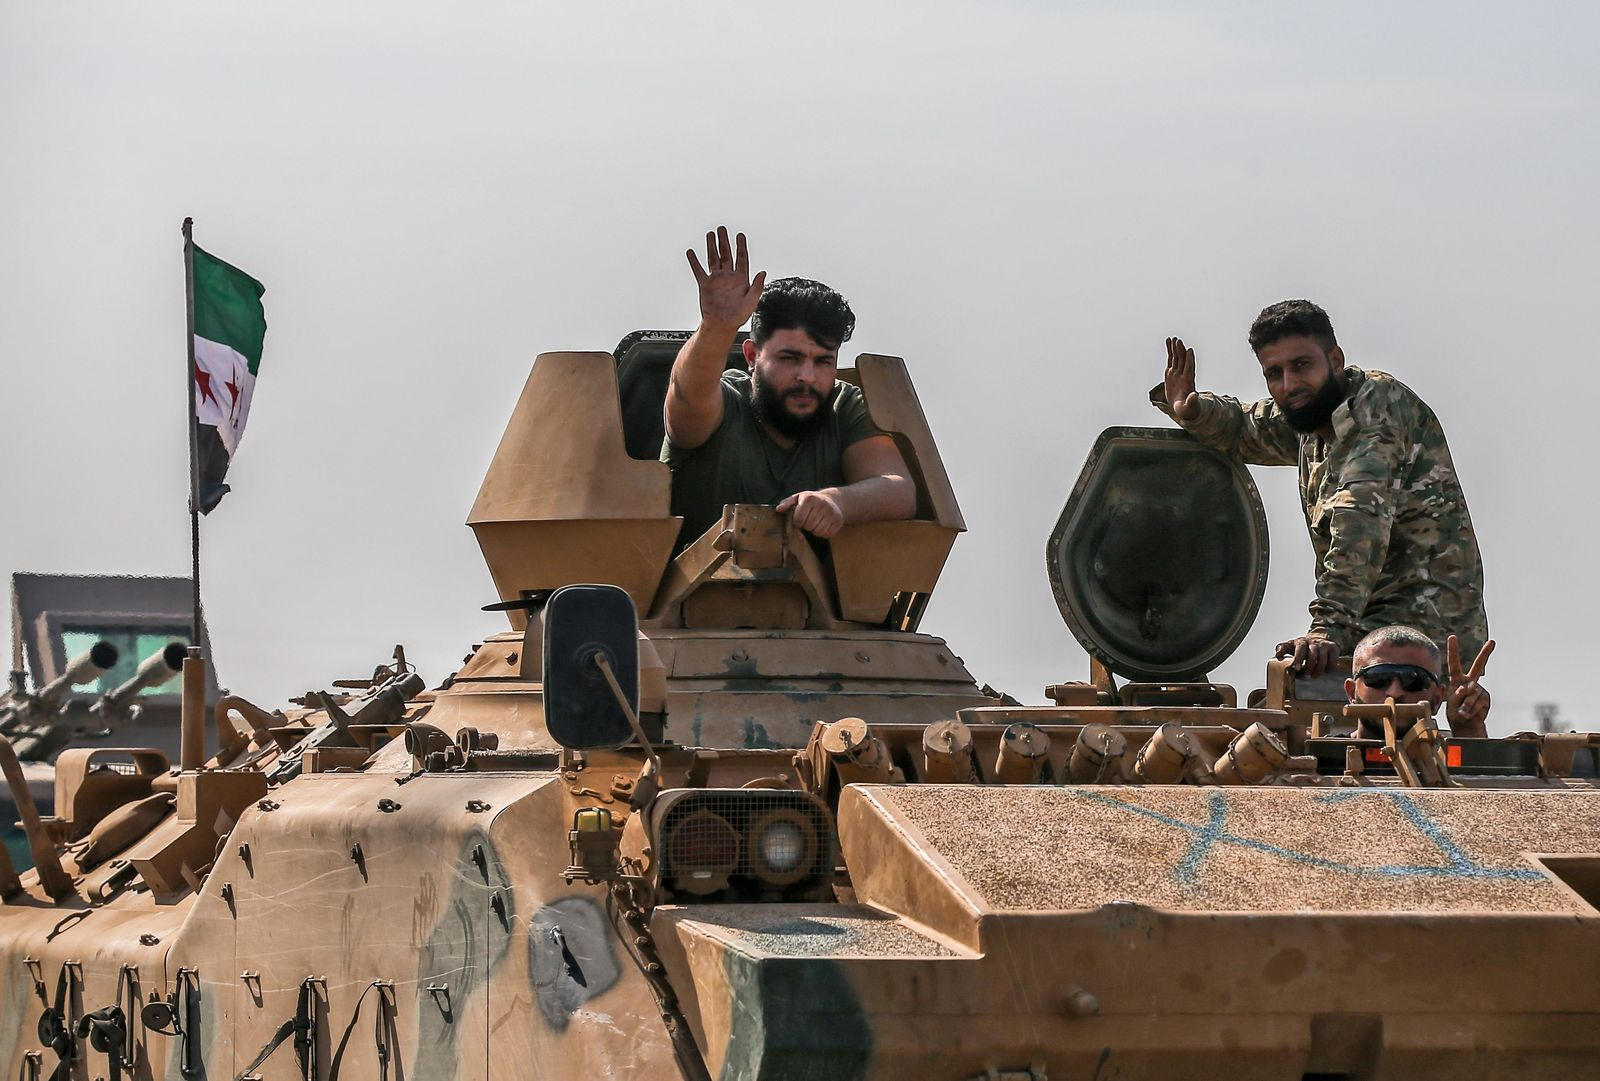 Turkish-backed Syrian opposition fighters on an armoured personnel carrier wave as they drive to cross the border into Syria, in Akcakale, Sanliurfa province, southeastern Turkey, Friday, Oct. 18, 2019. (AP Photo/Emrah Gurel)